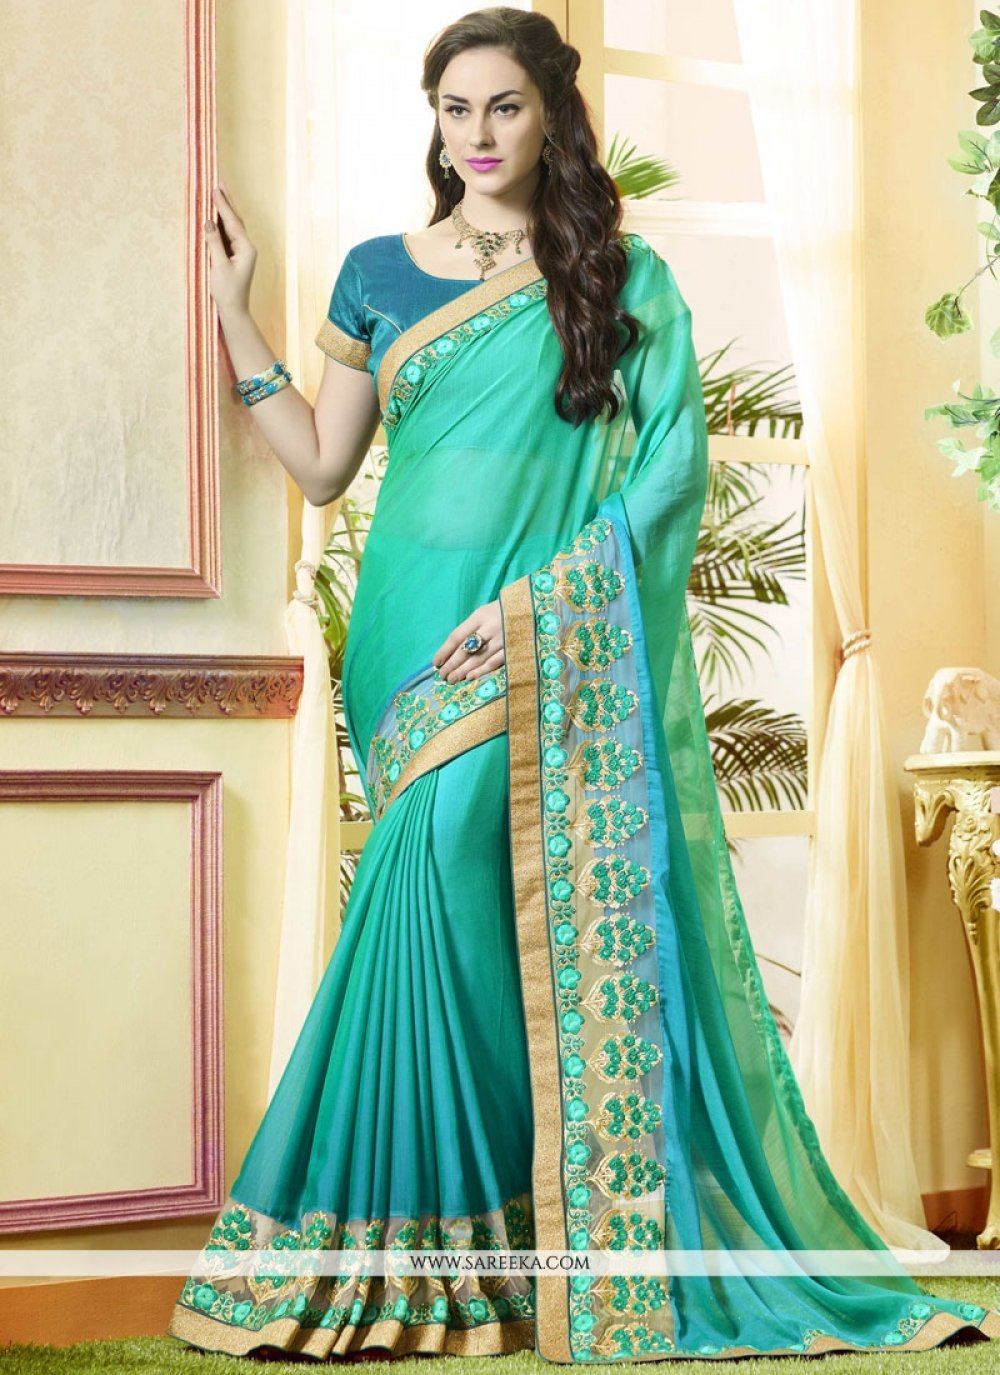 Patch Border Work Blue and Sea Green Faux Georgette Shaded Saree